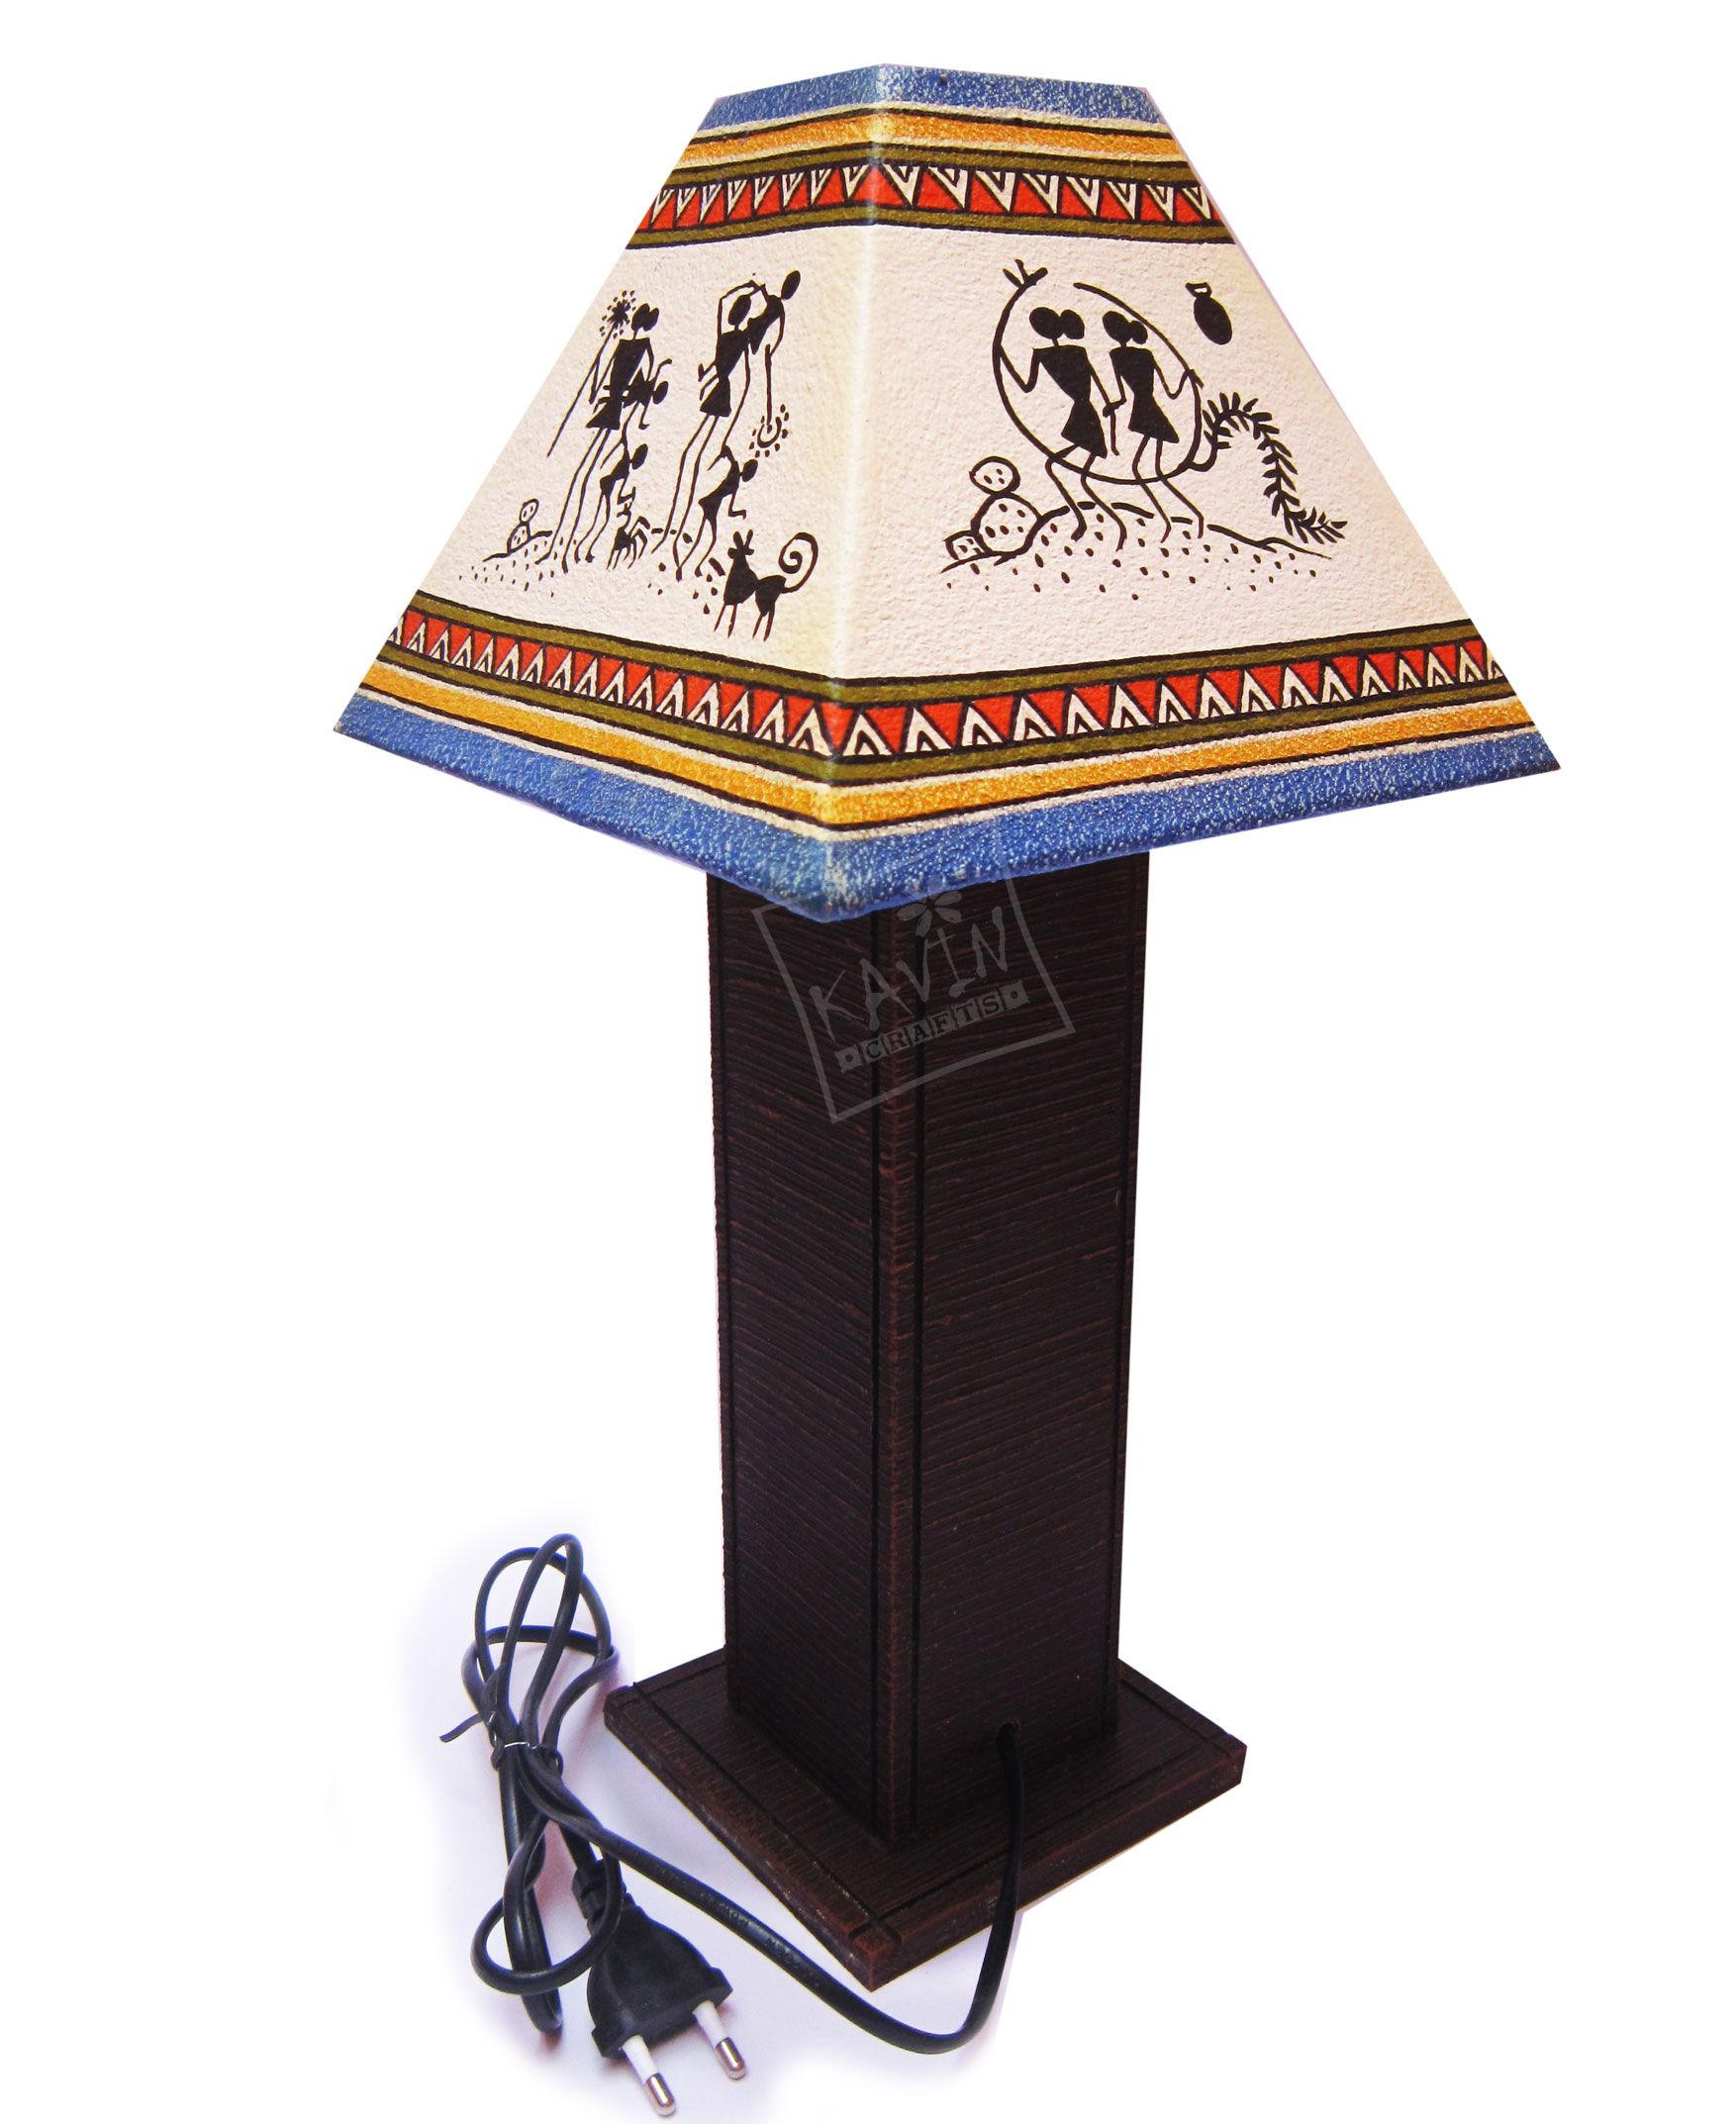 Handmade lampshades decorated with indian tribal traditional art handmade lampshades decorated with indian tribal traditional art works created by kavin crafts handmade lampshadespondicherrylamp shadestable geotapseo Gallery